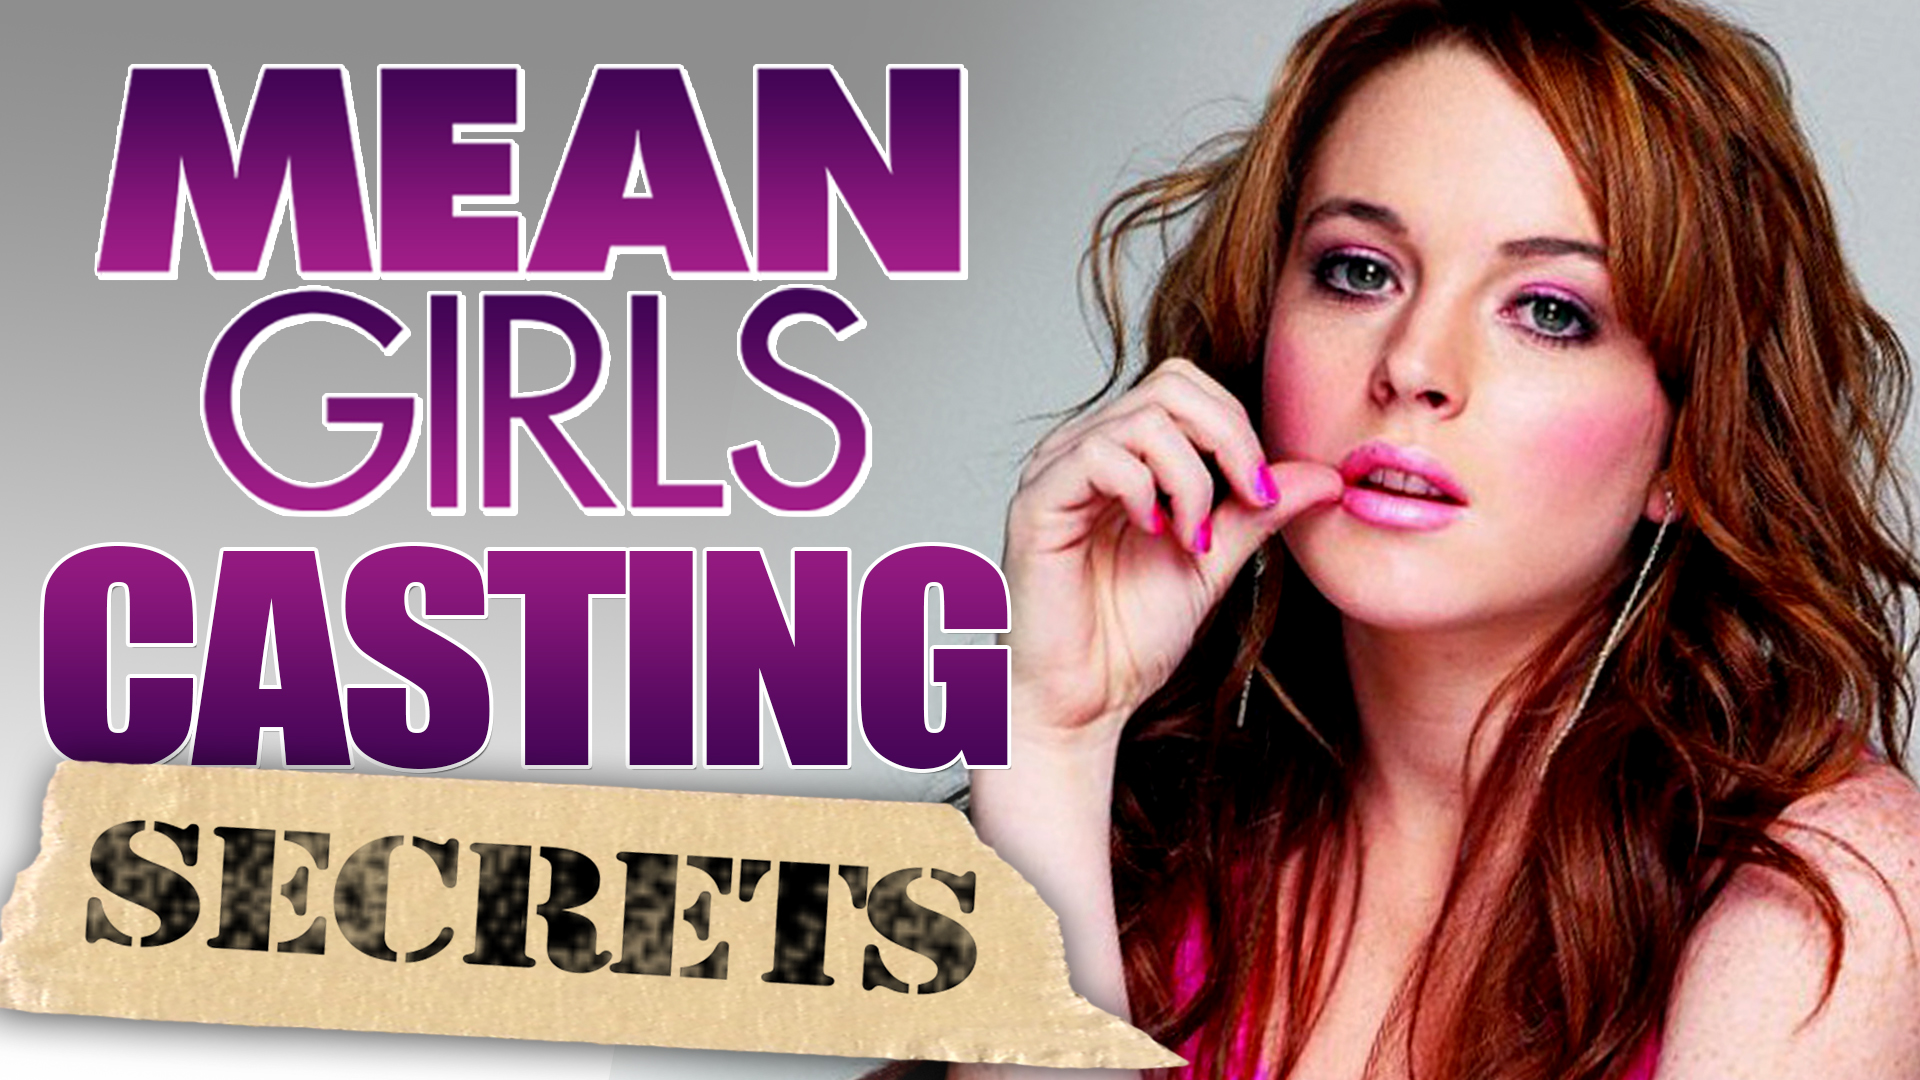 8 Casting Secrets You Didn't Know About 'Mean Girls'